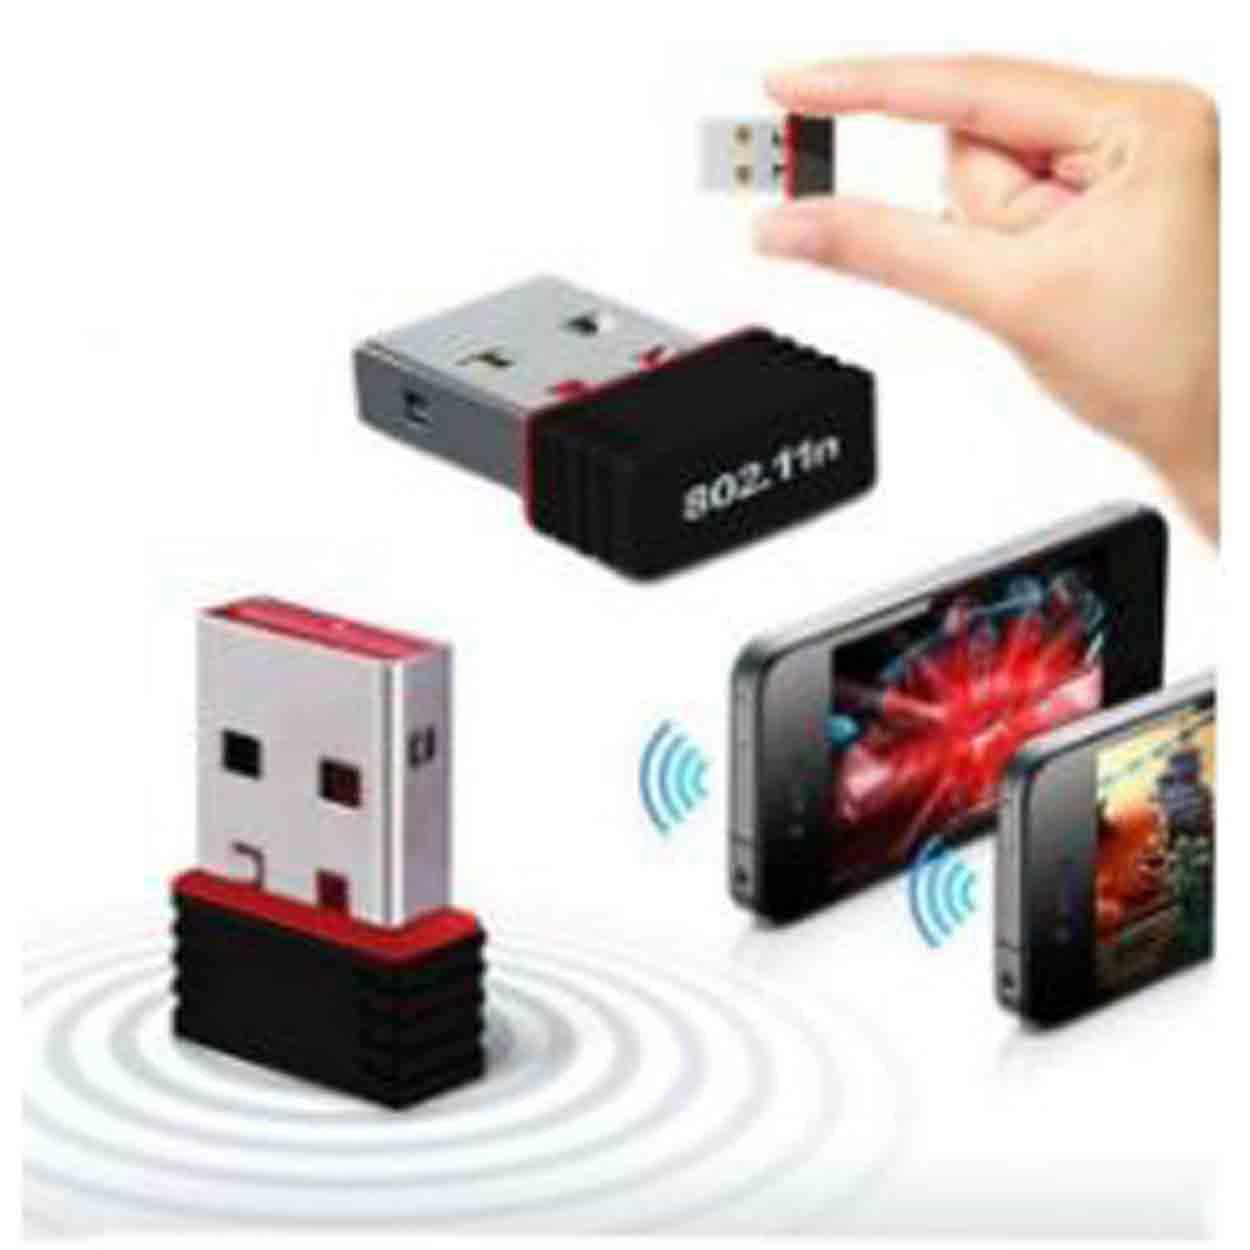 Wireless Usb Adapters For Sale Connectors Prices Tp Link Tl Wn725n 150mbps Nano N Wifi Adapter 80211n Mini Dongle Black Red